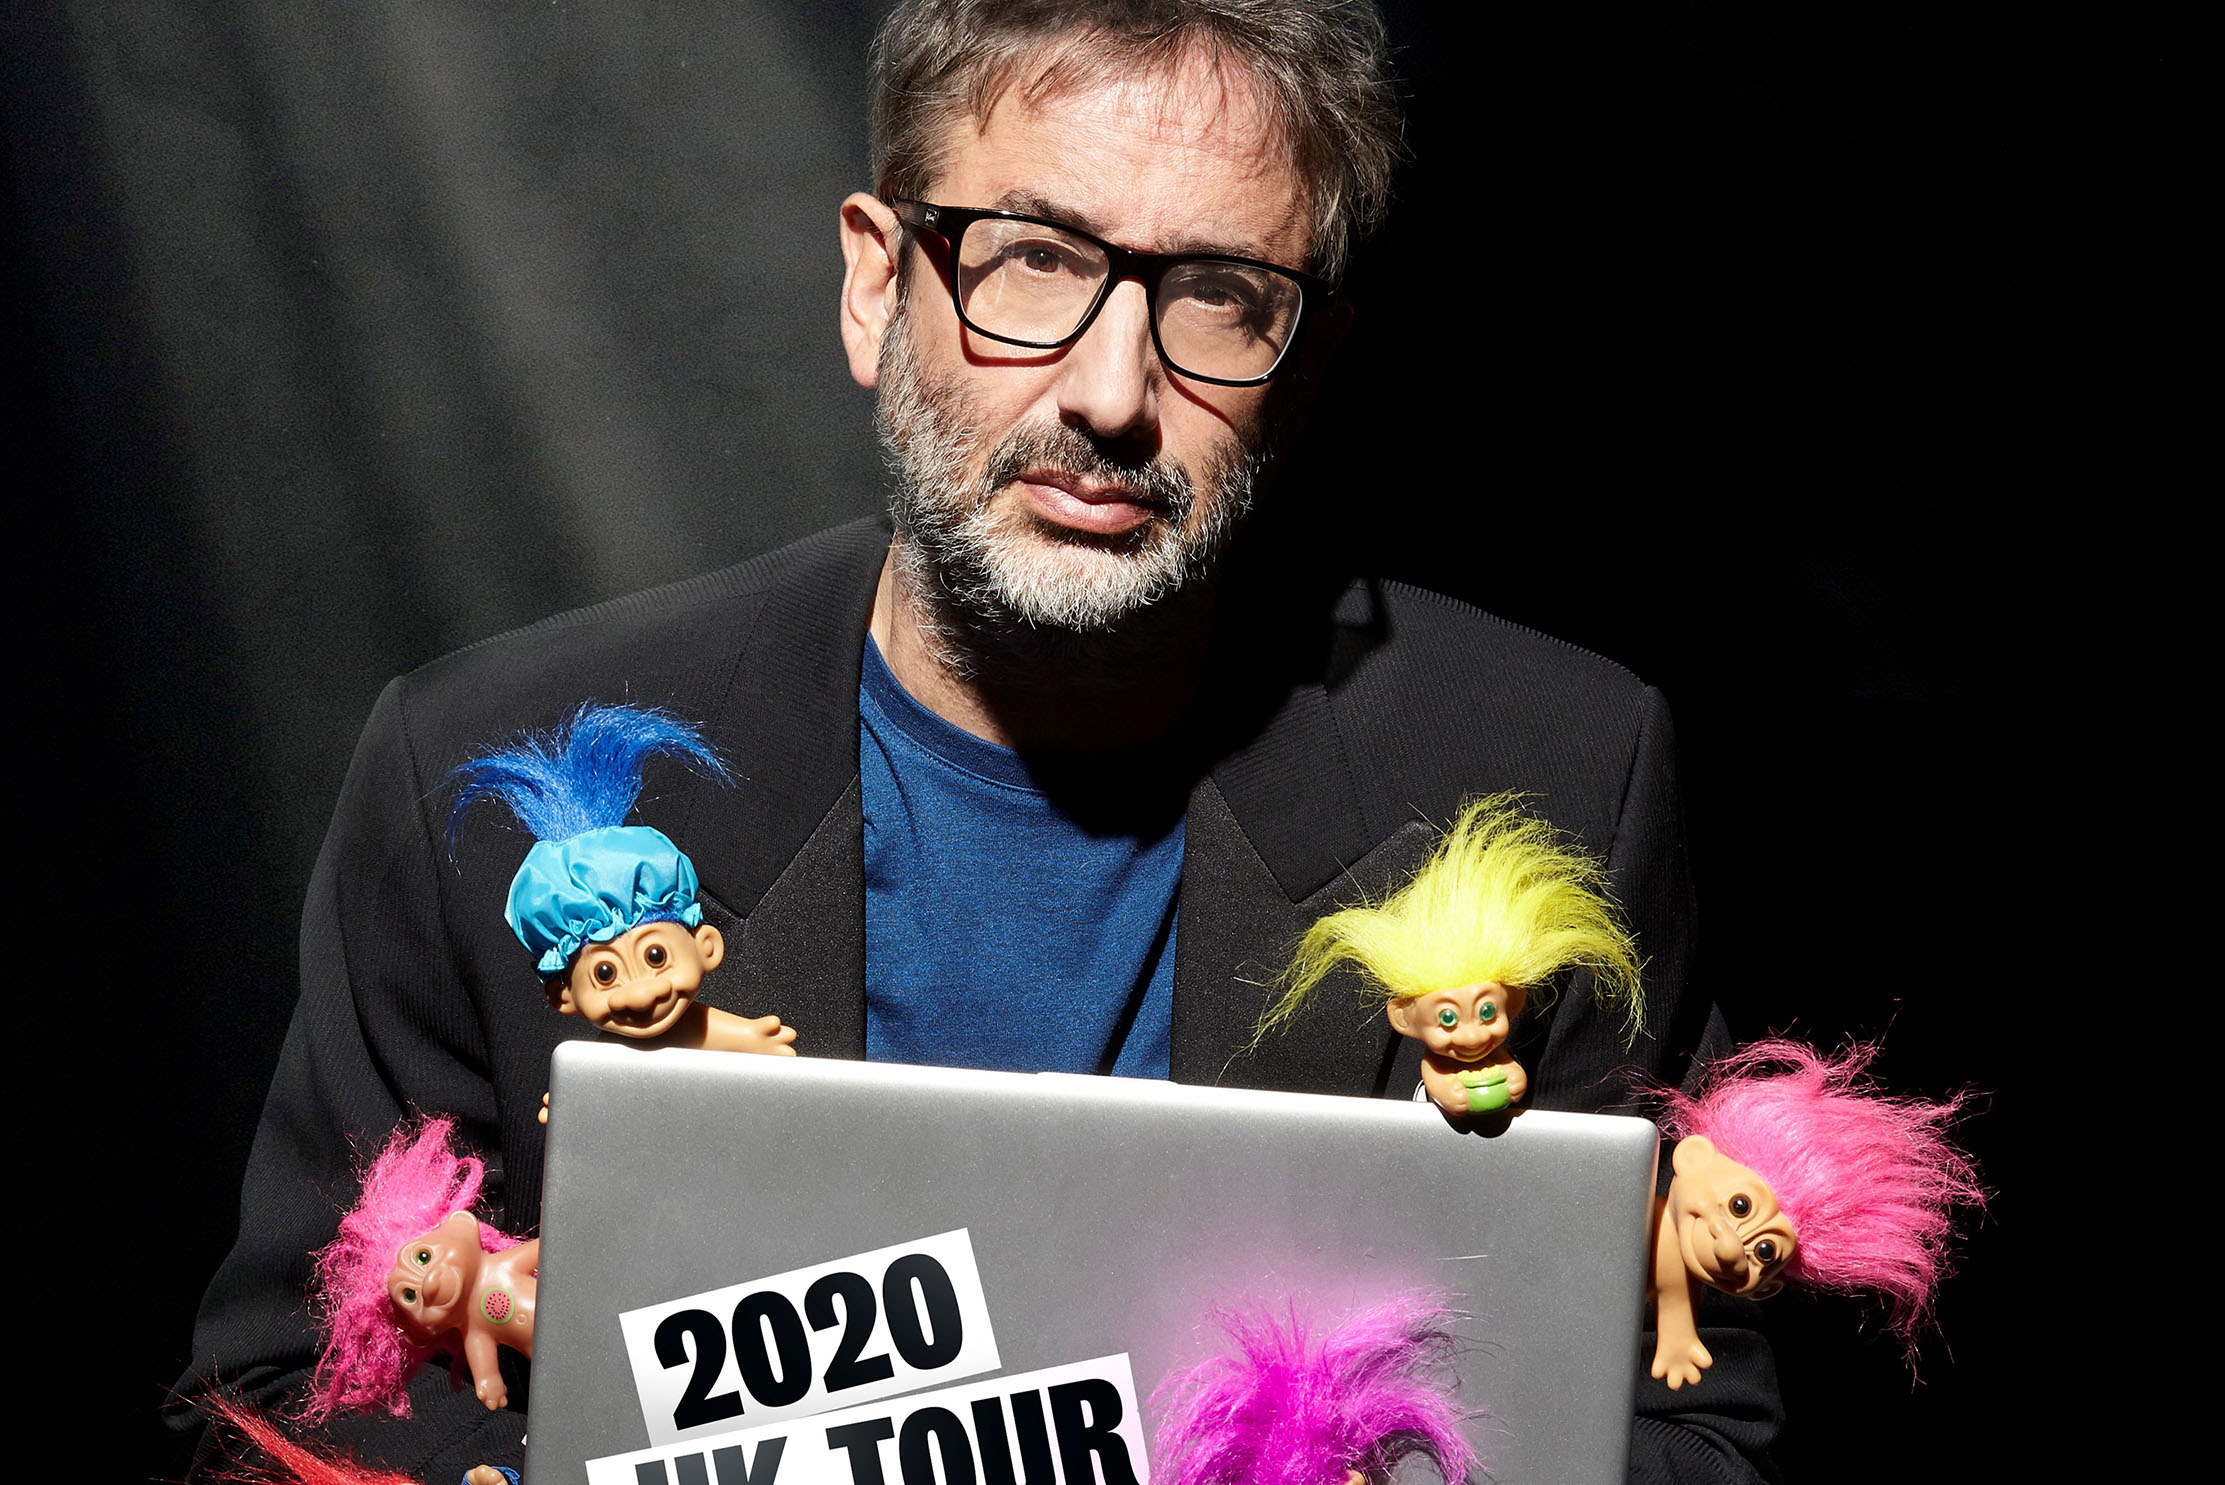 Elizabeth Rosenberg talks to comedian and broadcaster David Baddiel, as he brings his Trolls Not The Dolls tour to Theatre Royal Brighton on Sun 22 March 2020